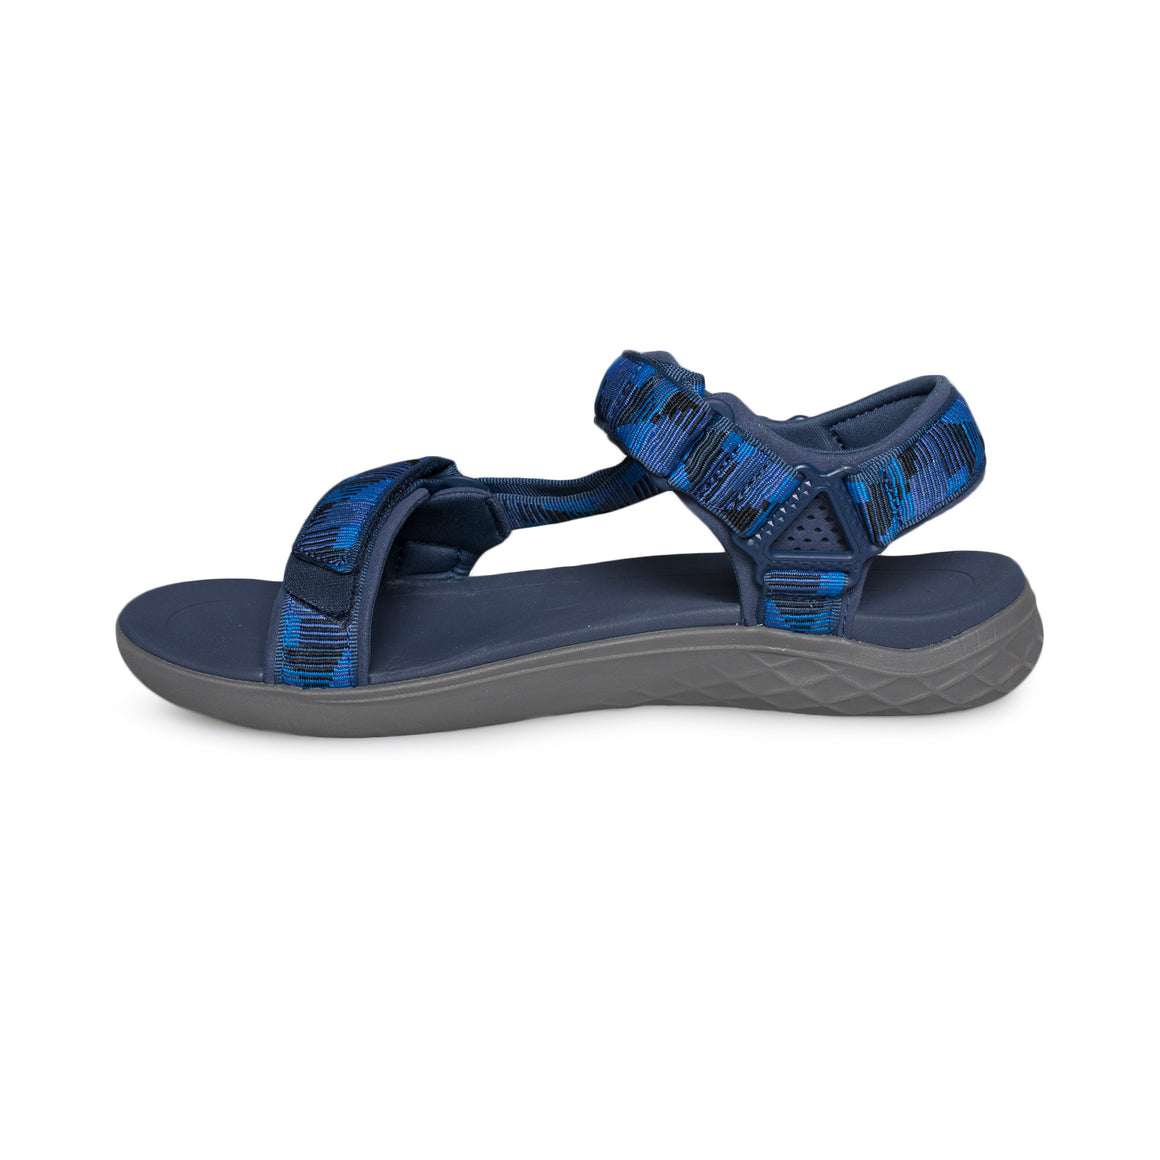 TEVA Terra Float 2 Universal Nica Galaxy Blue Sandal's - Men's